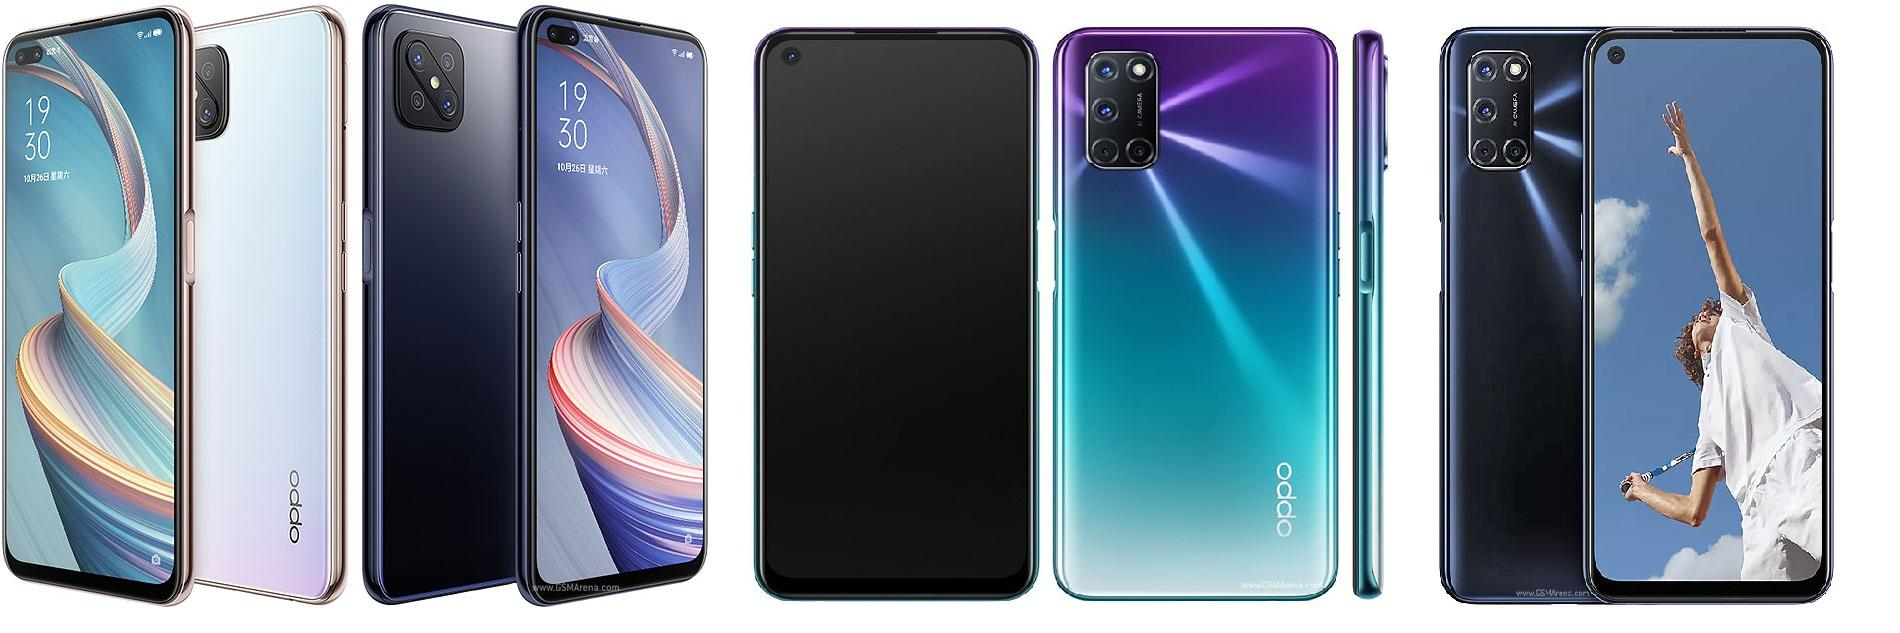 Oppo A92s, Oppo A72, Oppo A52